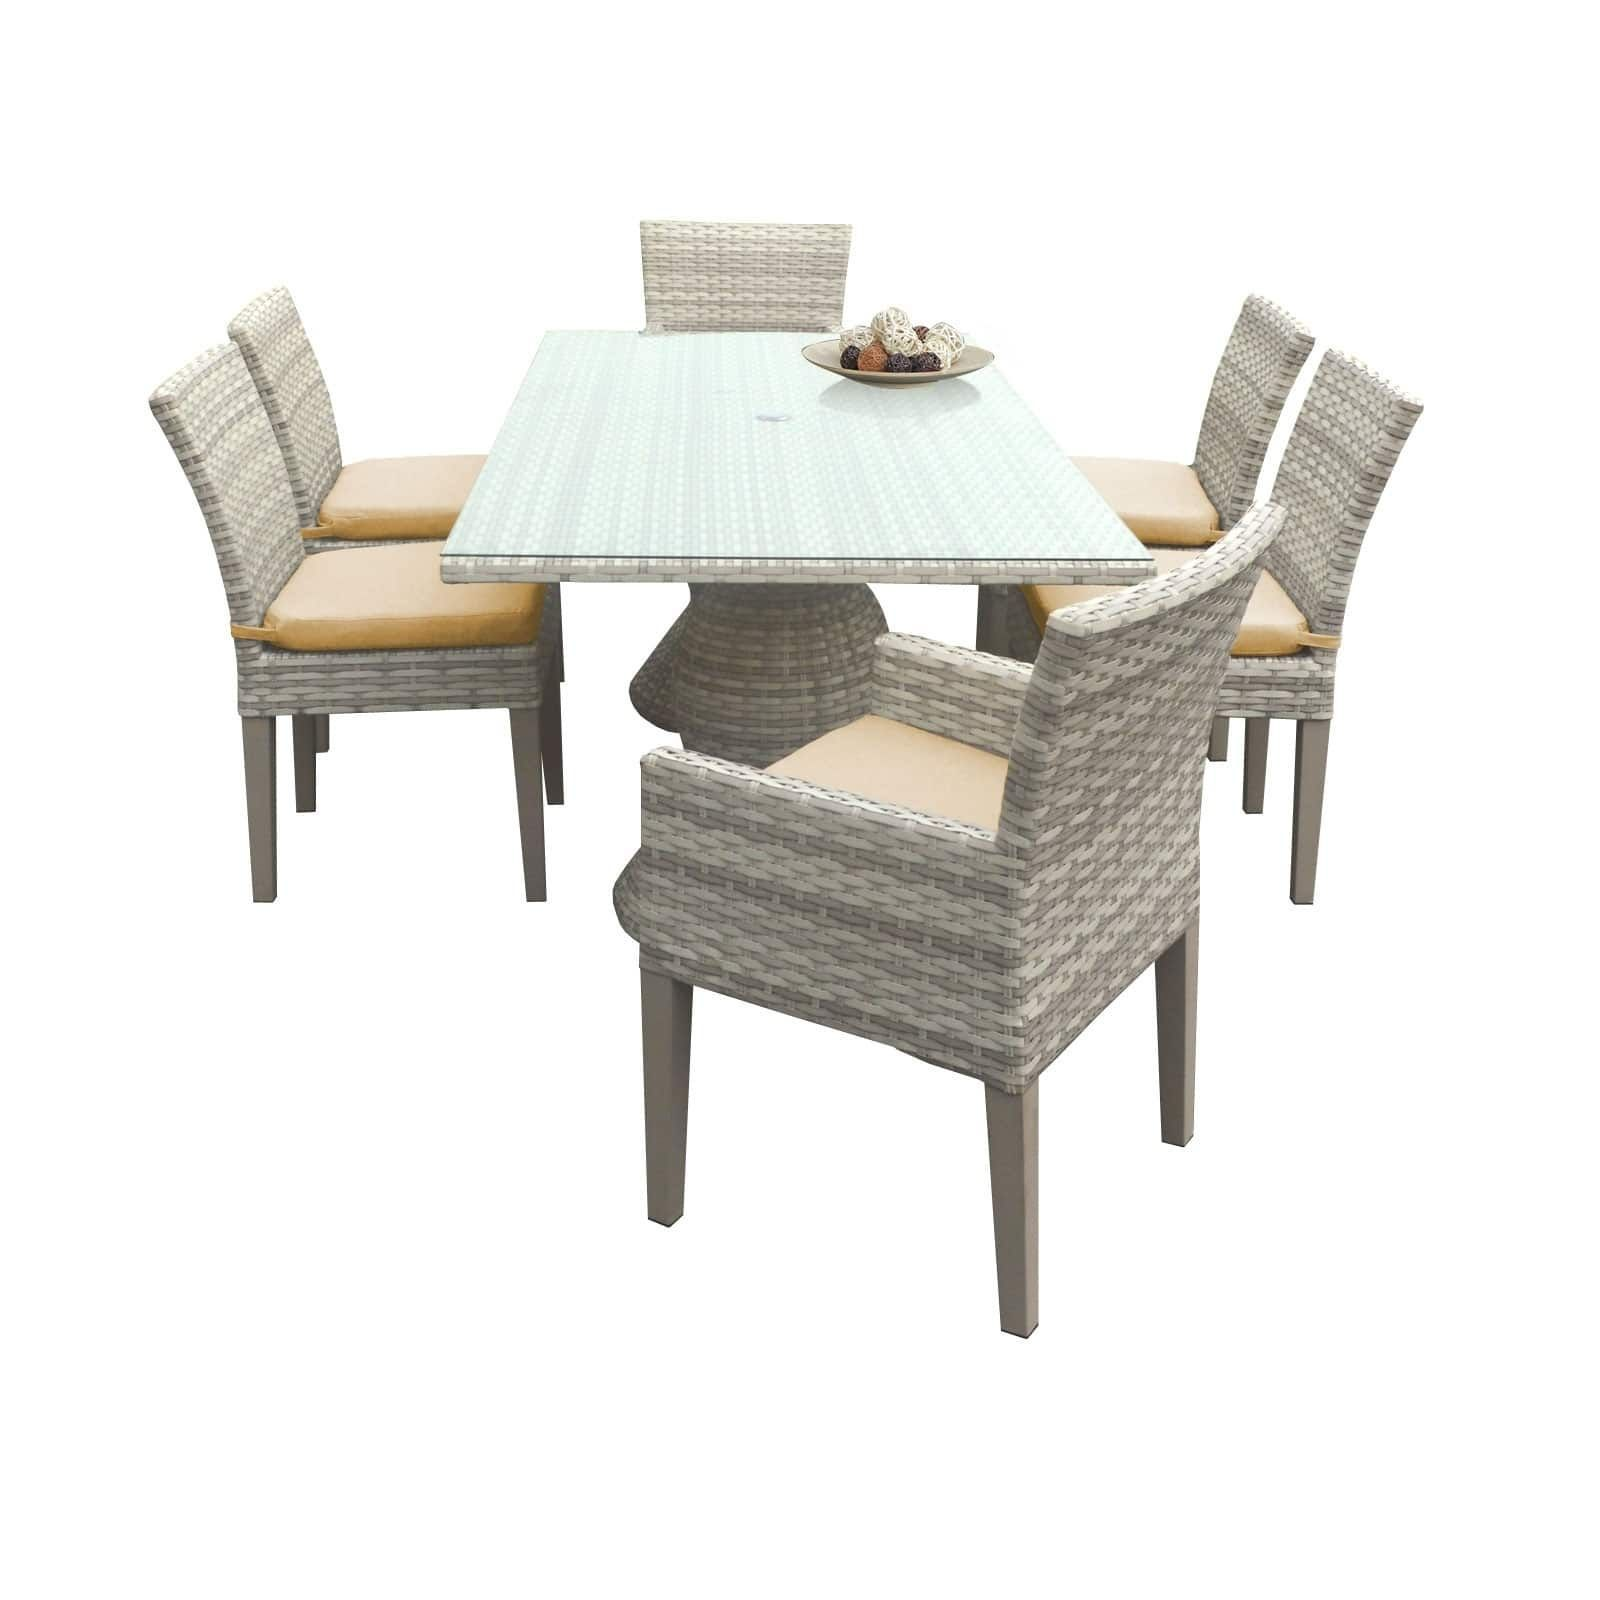 catamaran outdoor patio rectangular wicker dining table with 4 side rh co pinterest com